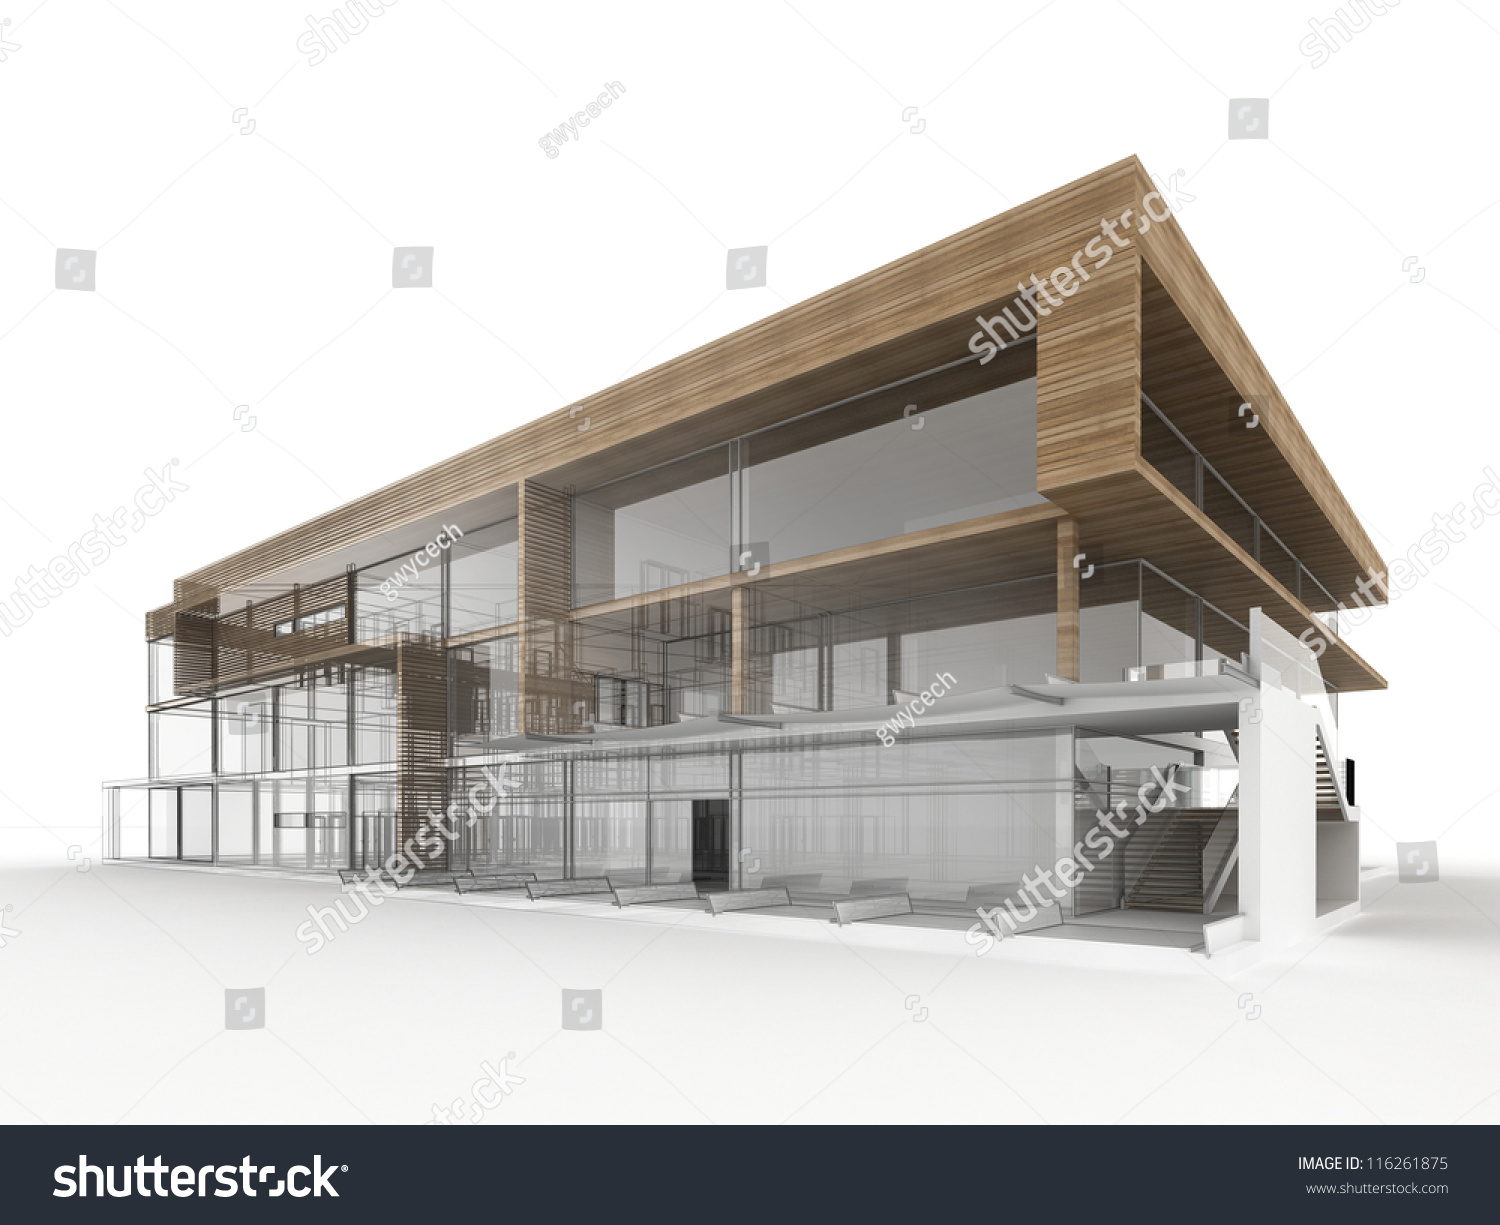 Design modern office building architects designers stock for Office building plans and designs